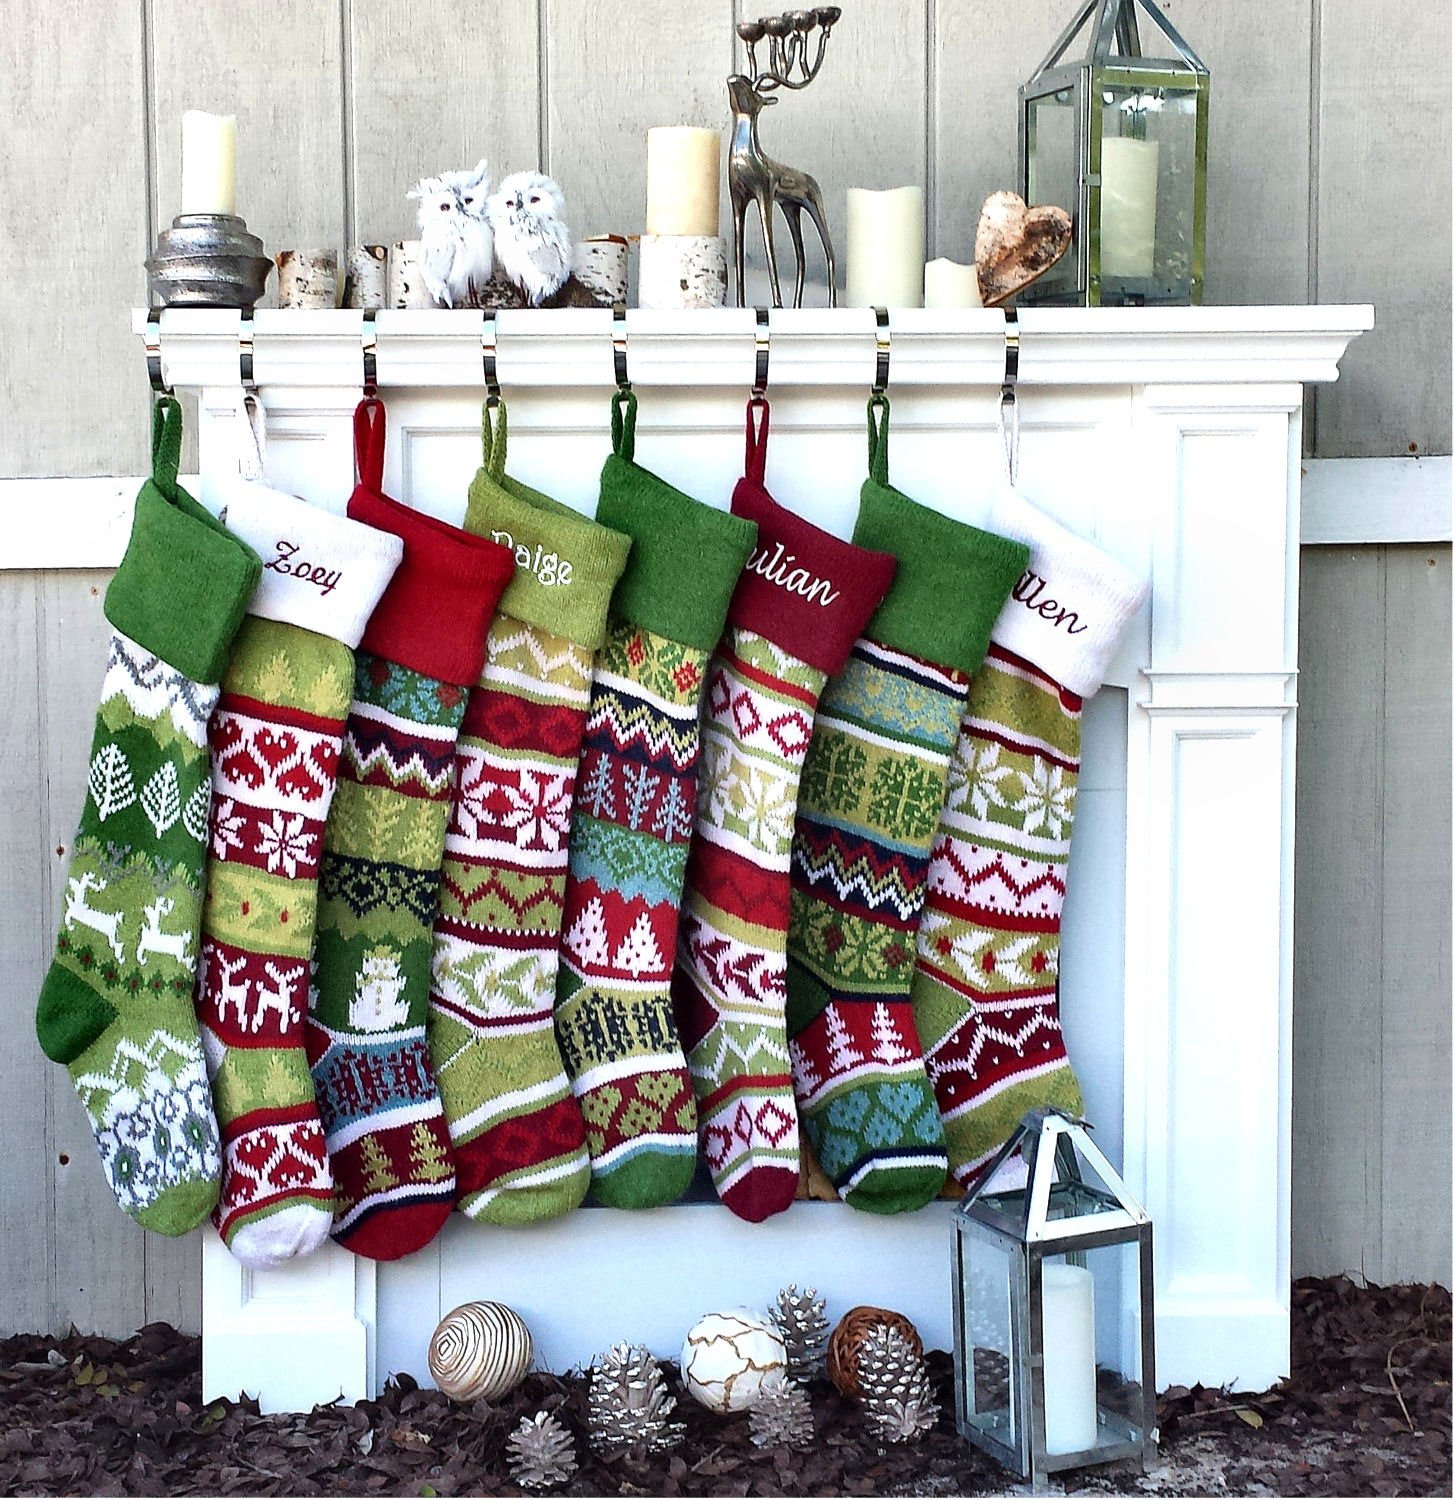 SET OF 5 Oversized 28'' Knitted Christmas Stockings FairIsle Knit + Monogram - CHOOSE YOUR DESIGNS - Embroidered with Choice of YOUR Names by CHRISTMAS-STOCKINGS-by-STOCKINGFACTORY (Image #9)